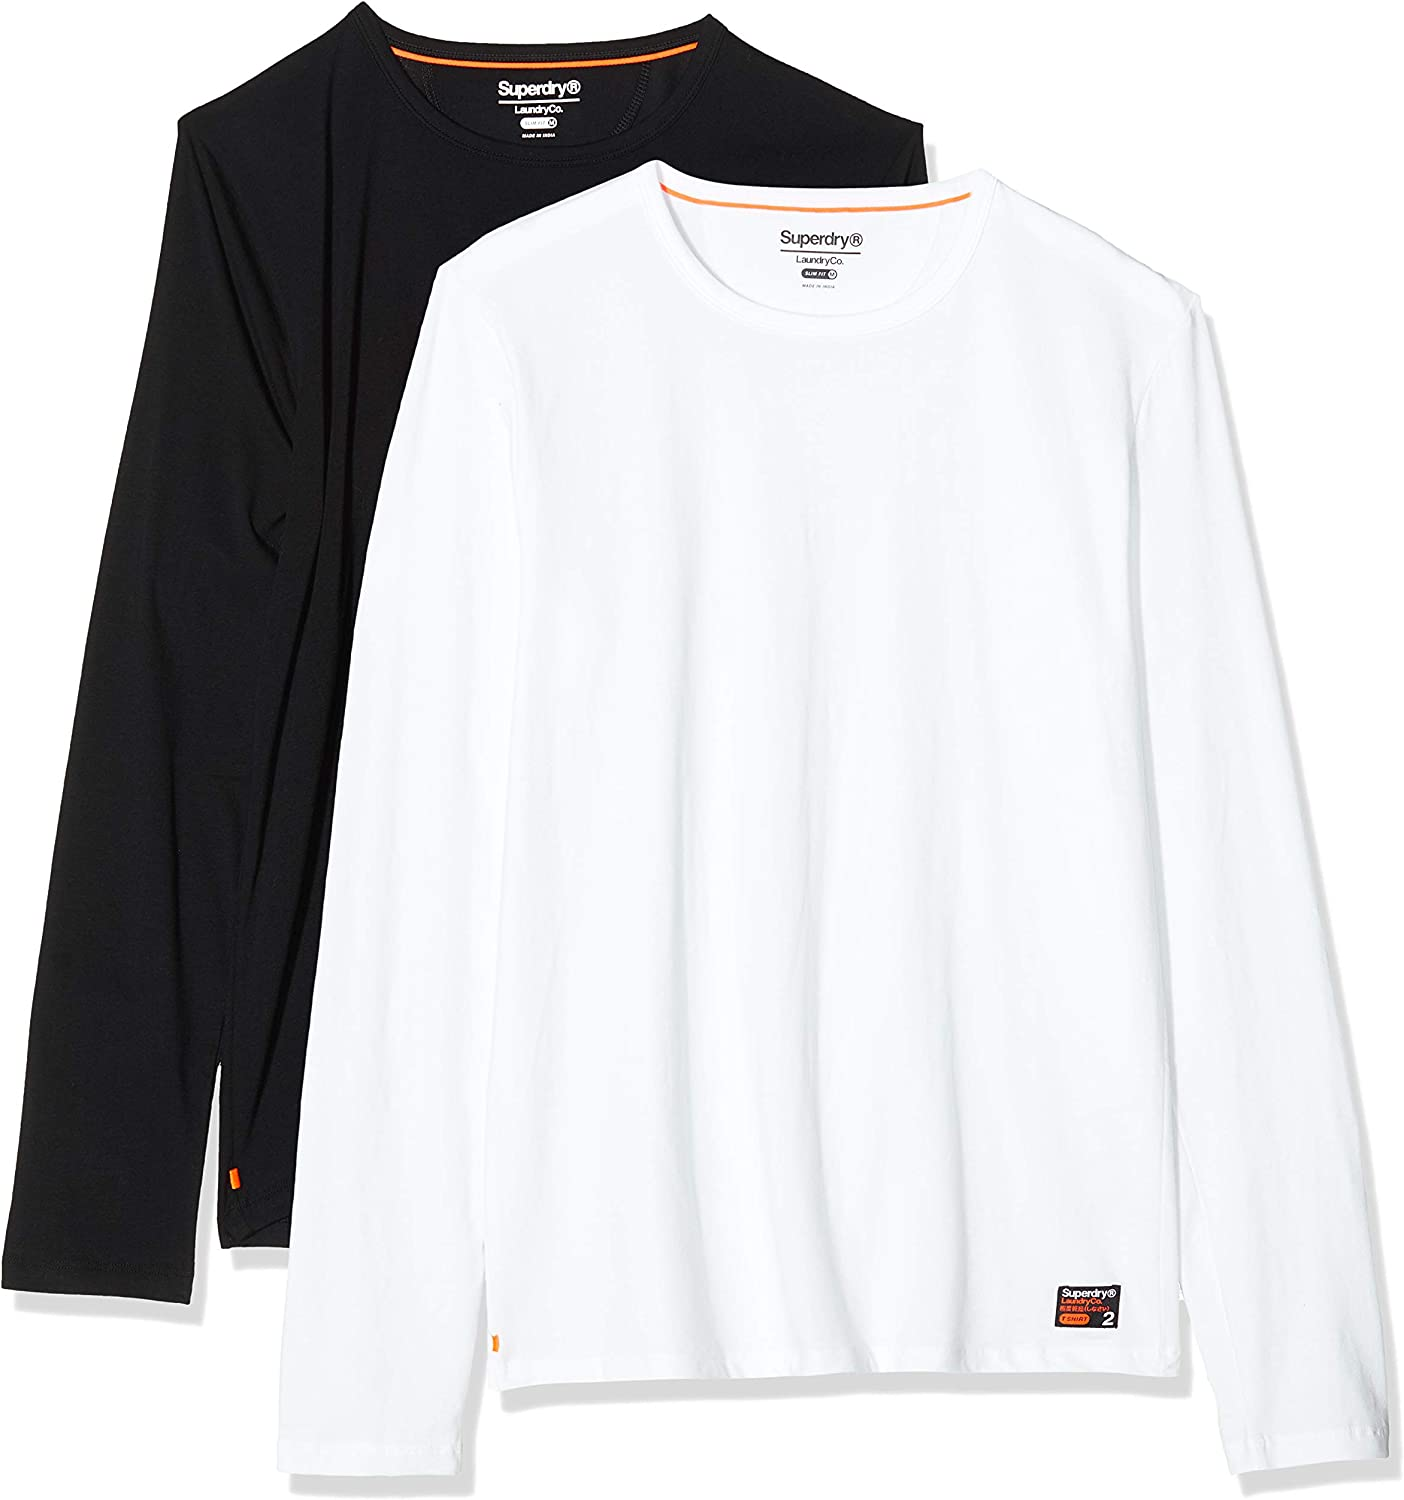 Superdry Organic Cotton Laundry Slim T-Shirts 2 - In Ranking TOP2 a popularity Pack Fit